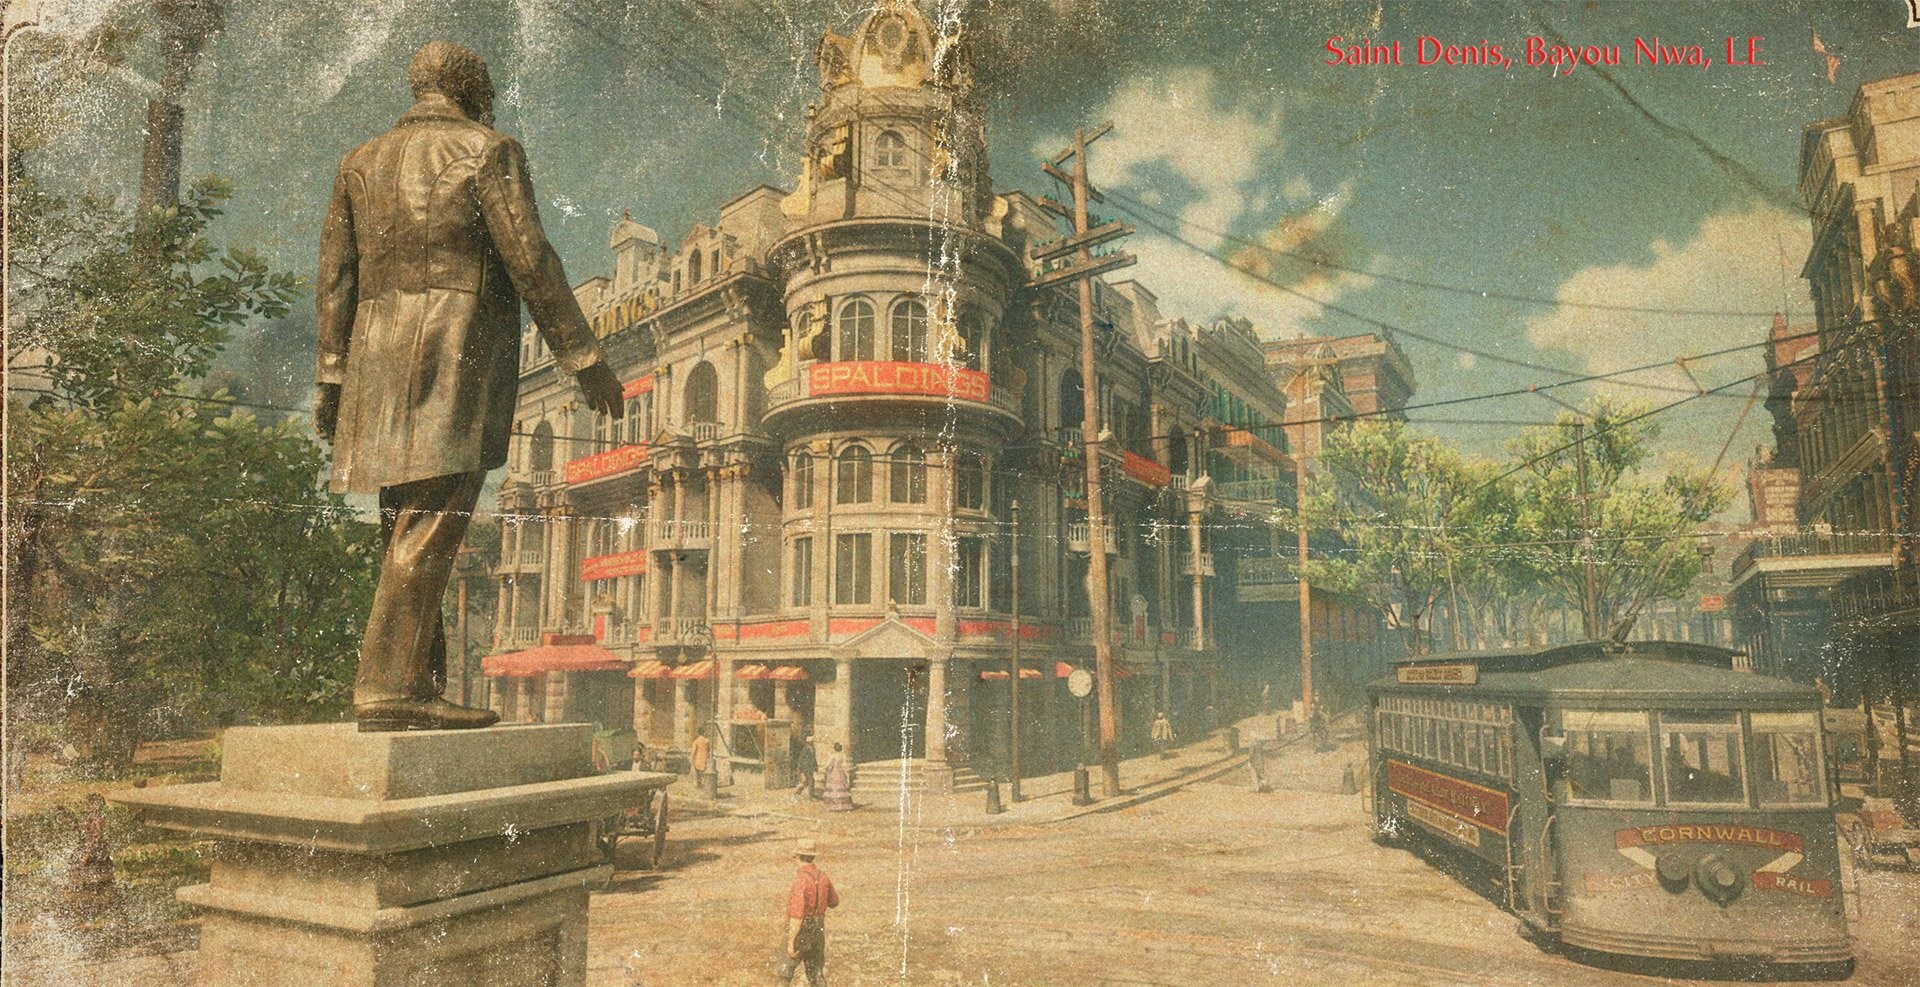 Saint Denis is the sprawling city in the south-east corner of the map. It's more industrialised than any other location and has trams, telephone lines and paddle steamers.